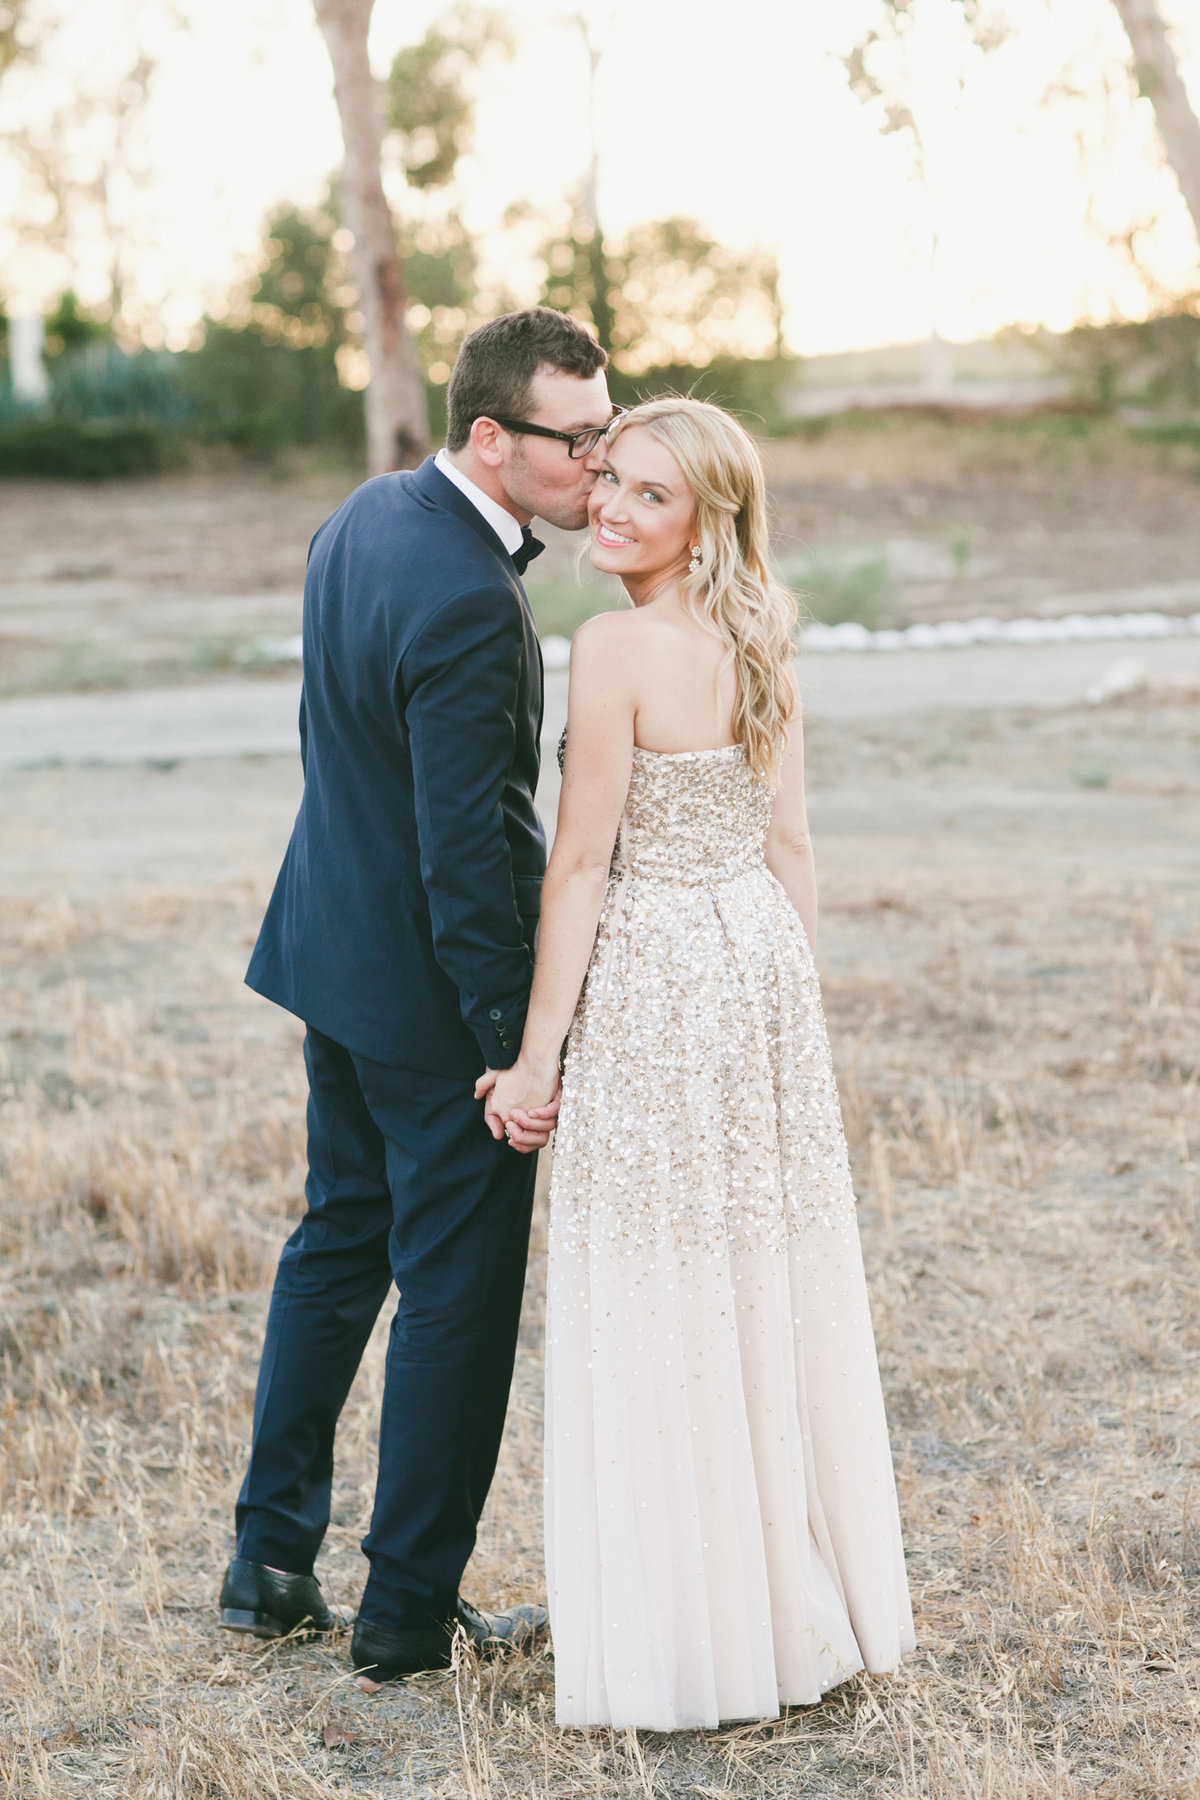 ahmason-ranch-santa-monica-calabasas-california-wedding-photographer-273